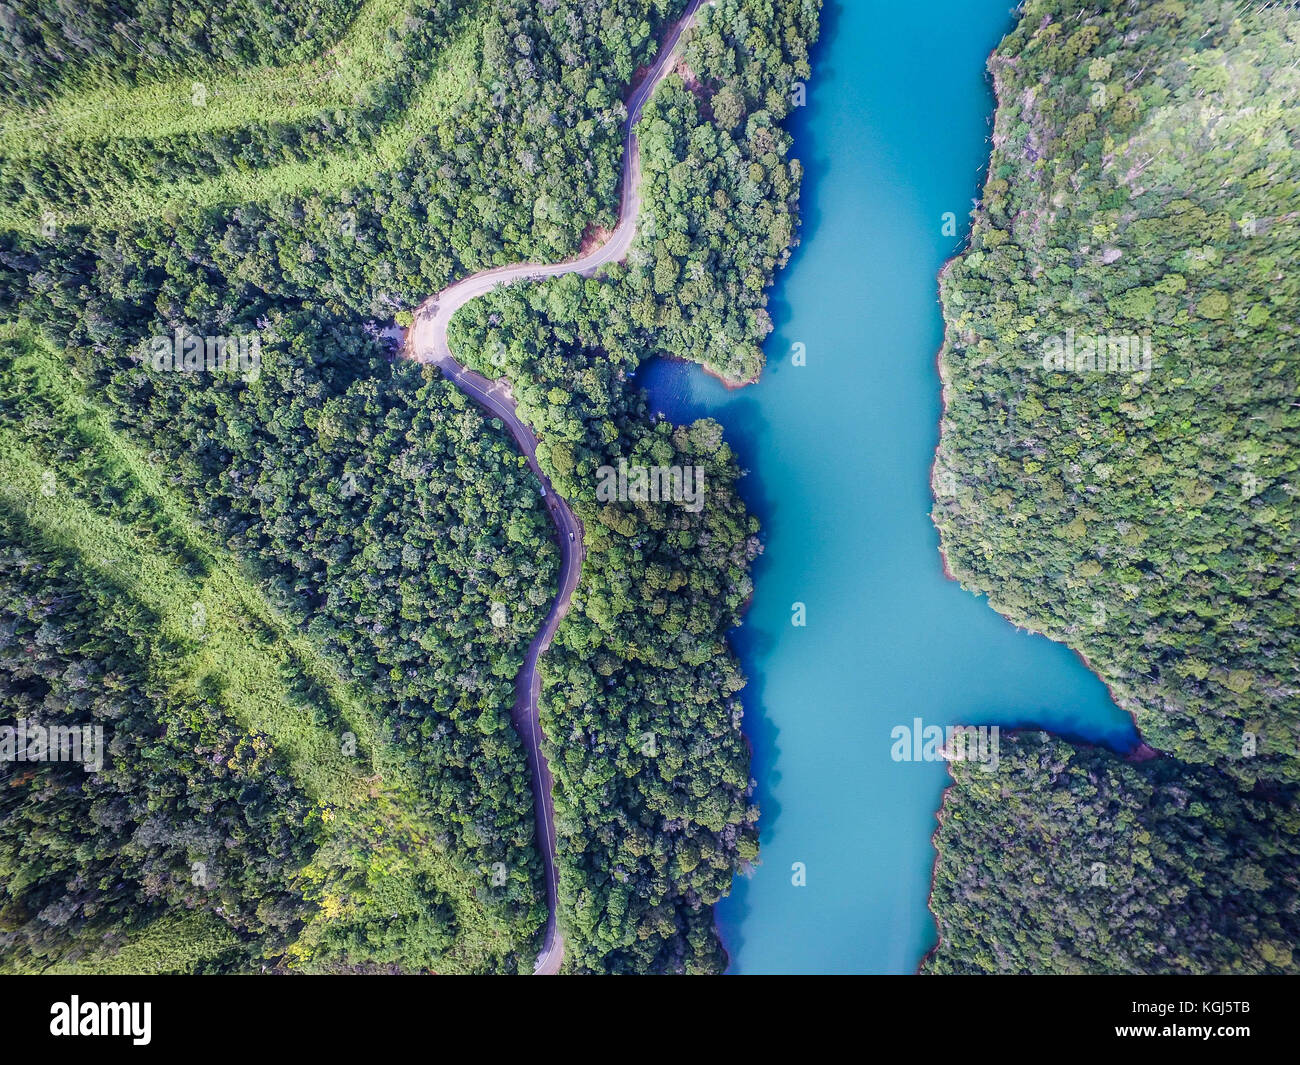 Drone view of a river in Sulawesi Indonesia - Stock Image